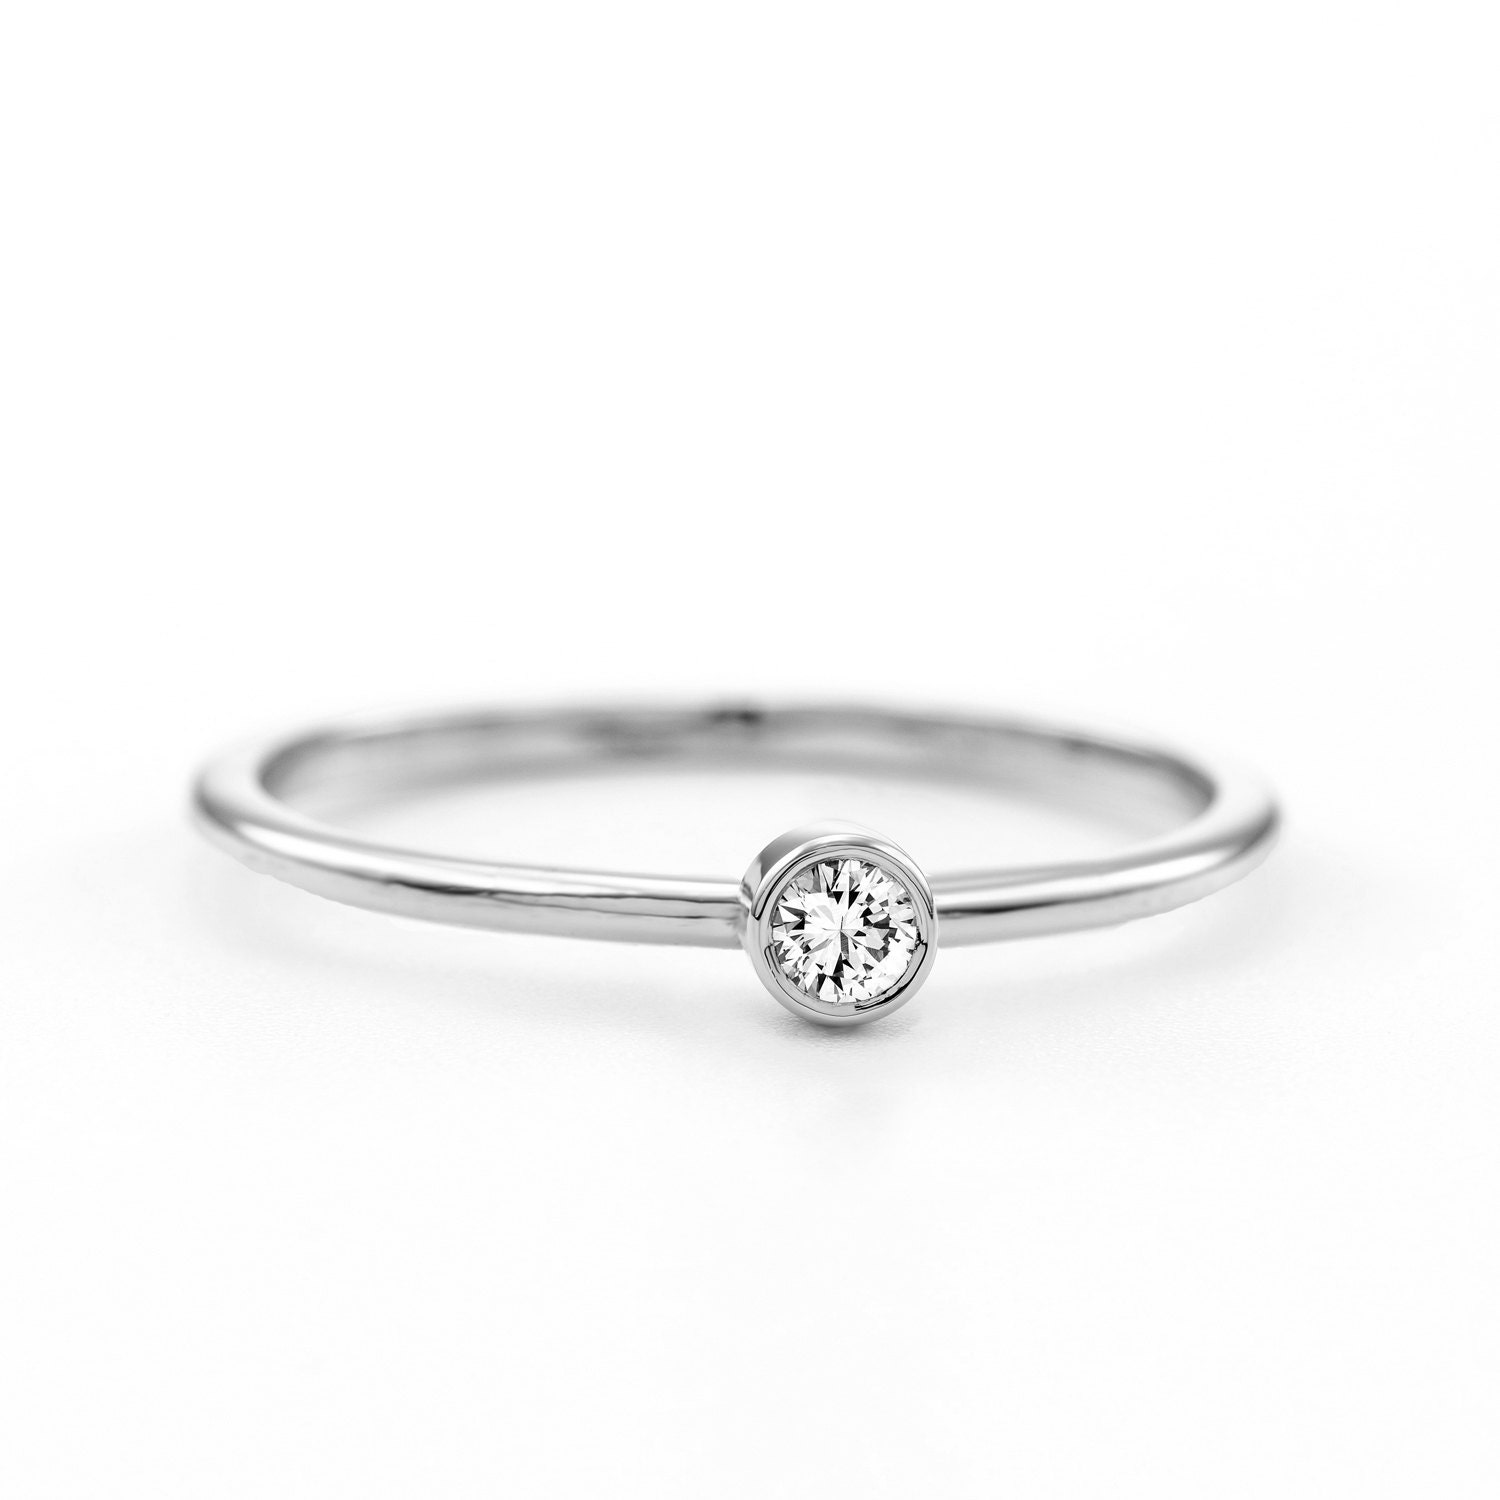 Thin Round Diamond Ring Dainty Round Diamond Ring Minimalist Round Engage